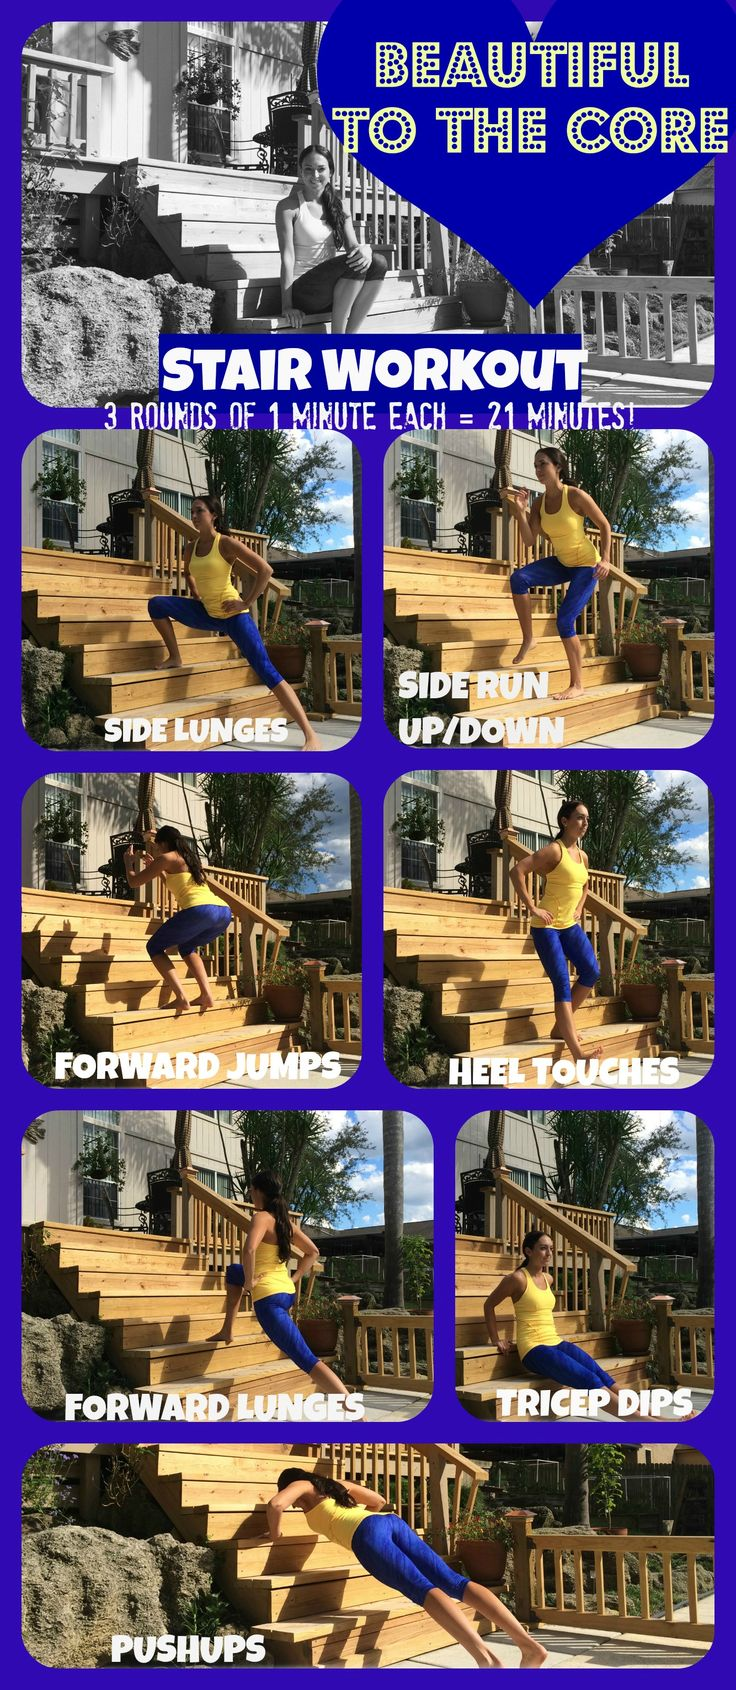 Got some stairs? Then you are all set for a great 21min workout!  Follow this Stairs workout with Beautiful to the Core. Follow the link for more free workouts and health tips!